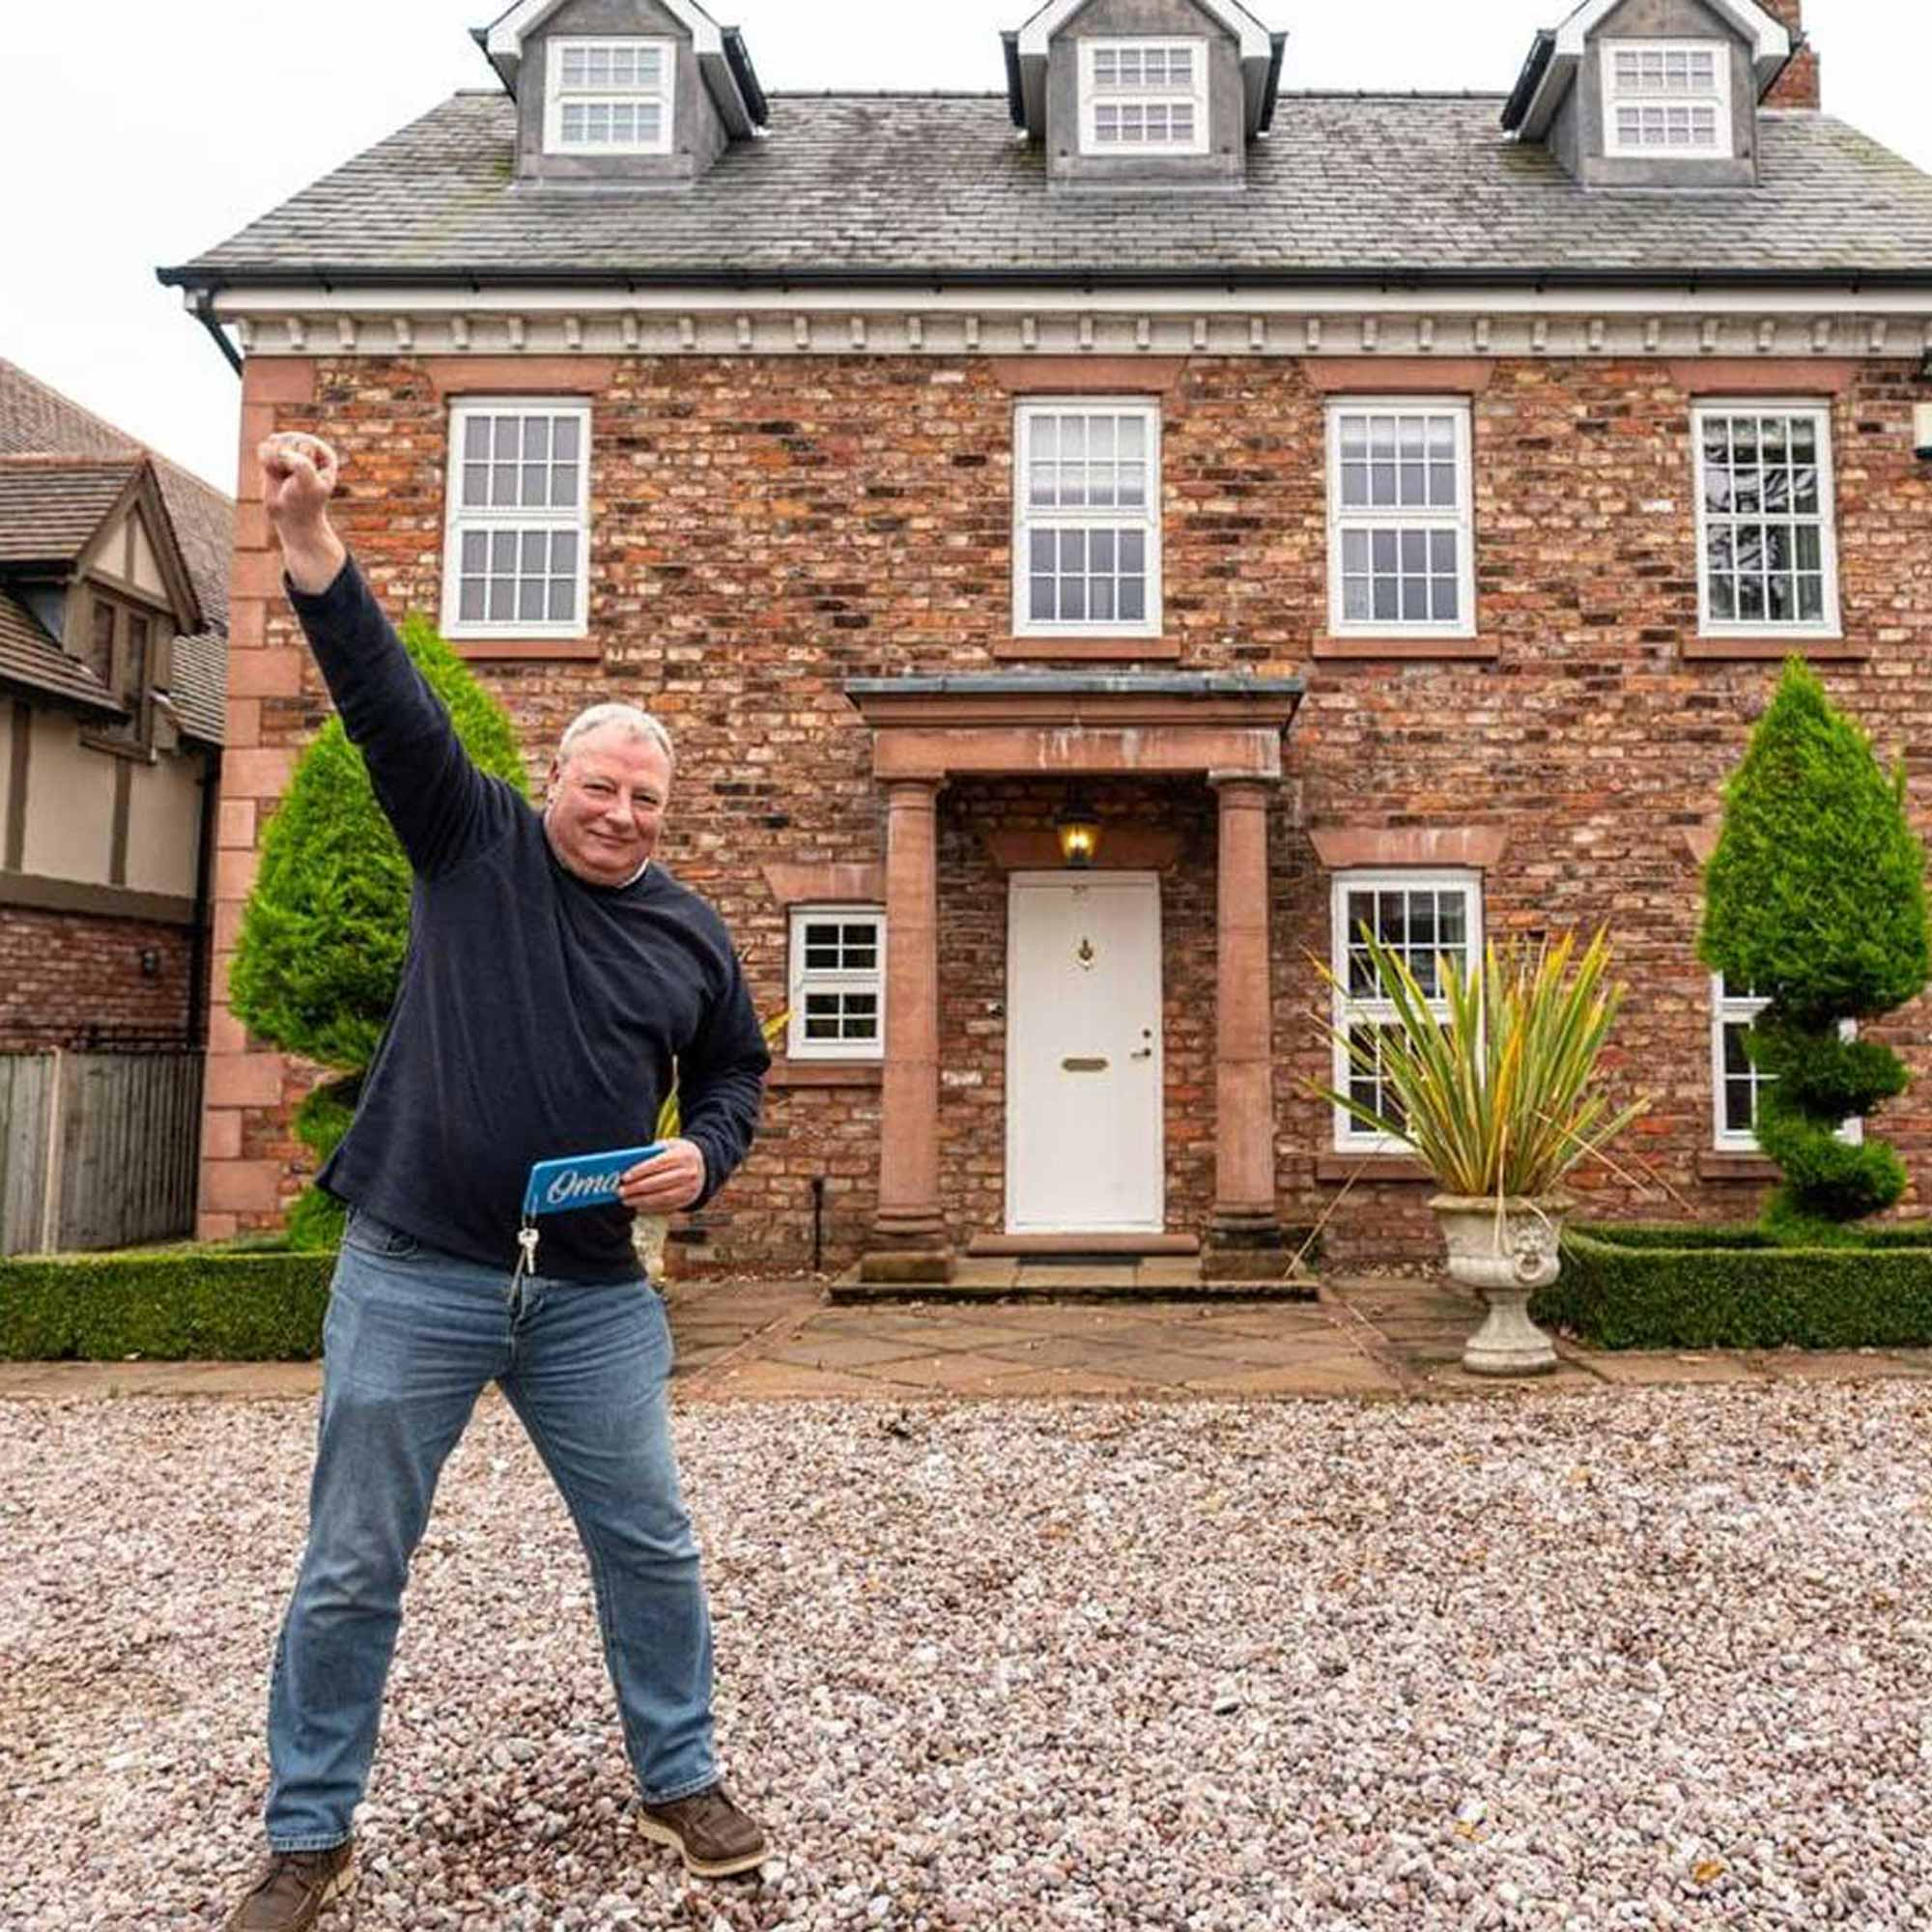 Winner of Million Pound House competition